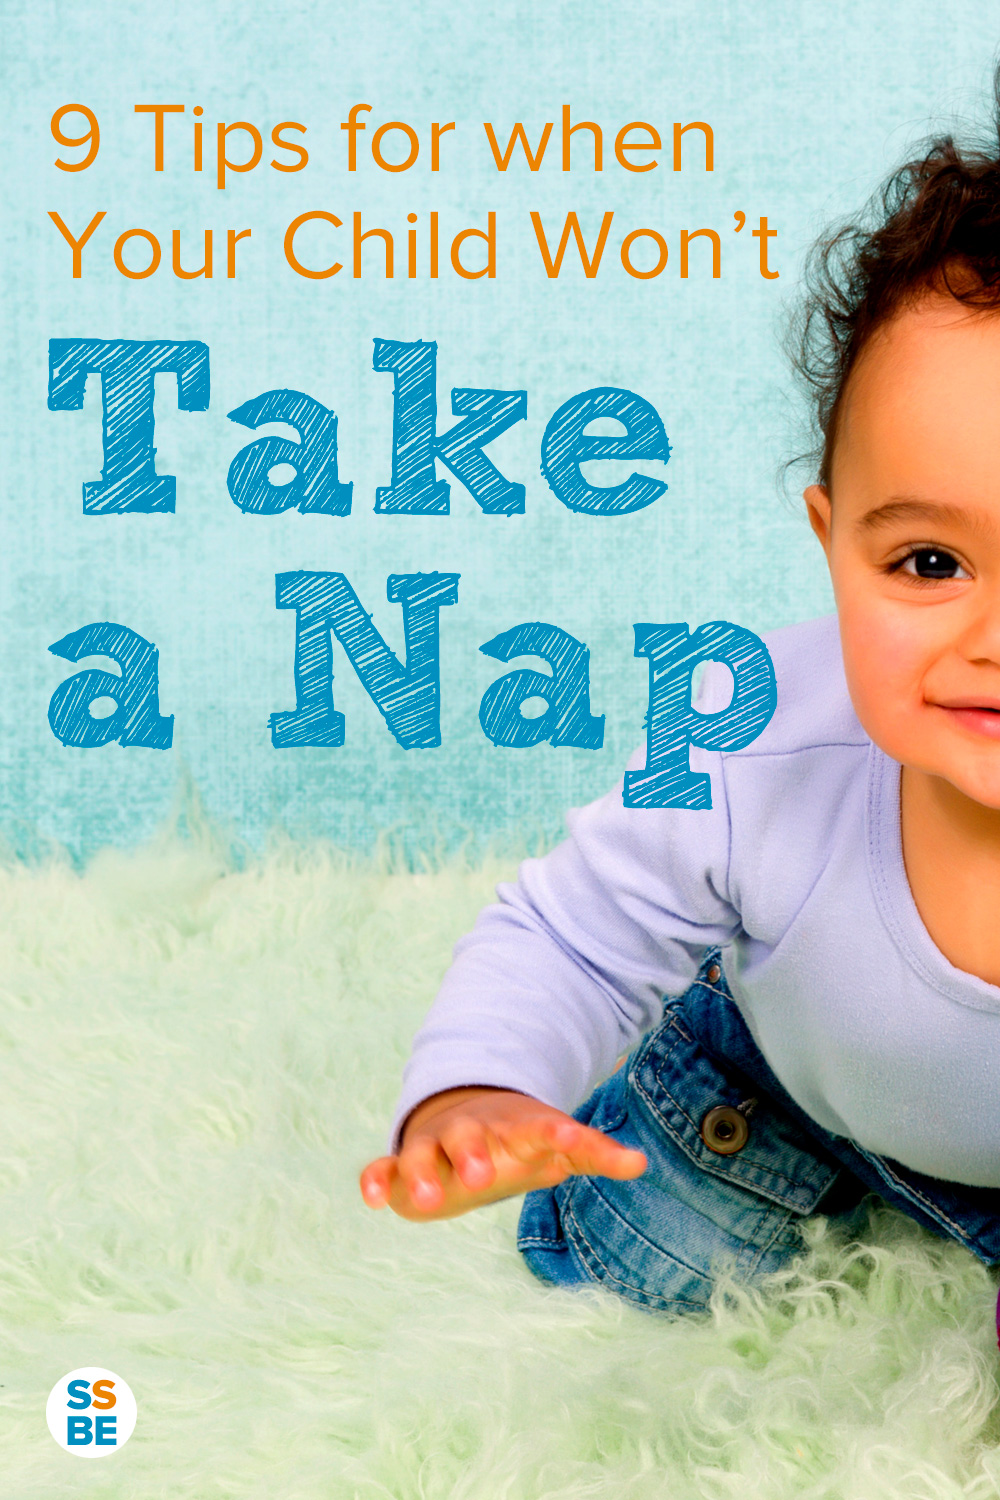 9 Useful Tips for when Your Child Won't Nap